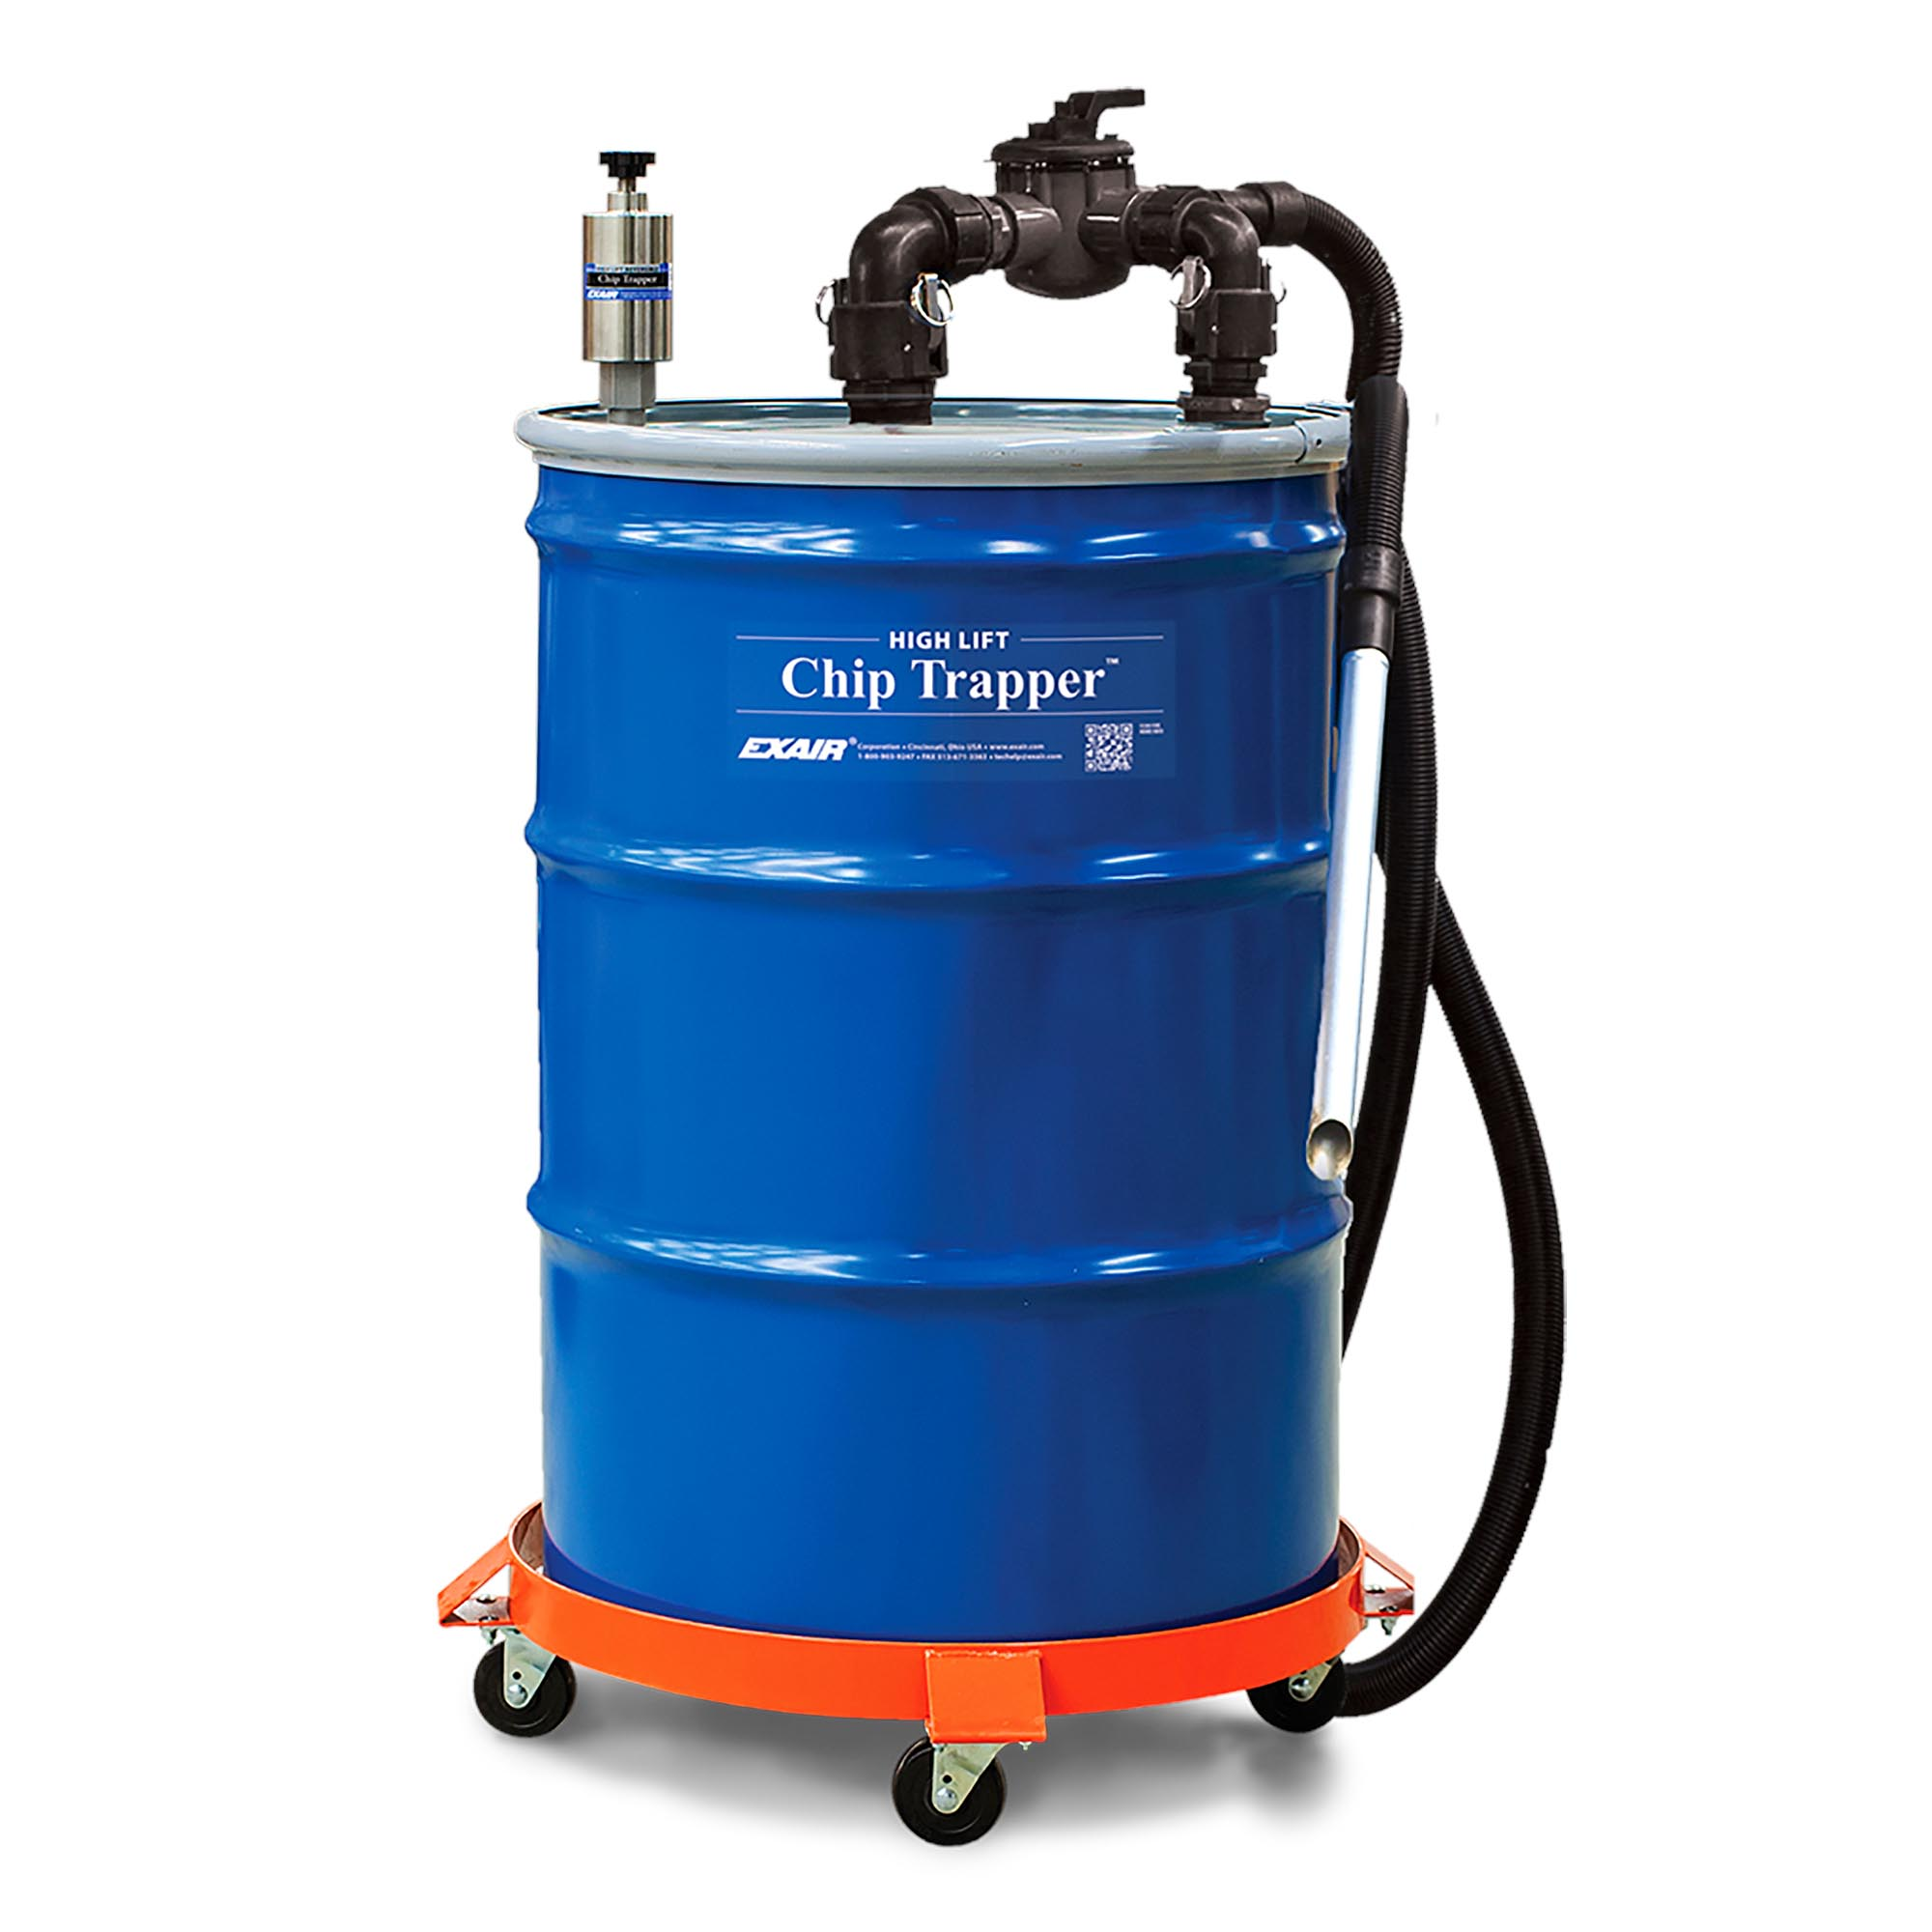 Model 6190 55 Gallon High Lift Chip Trapper Vacuum System